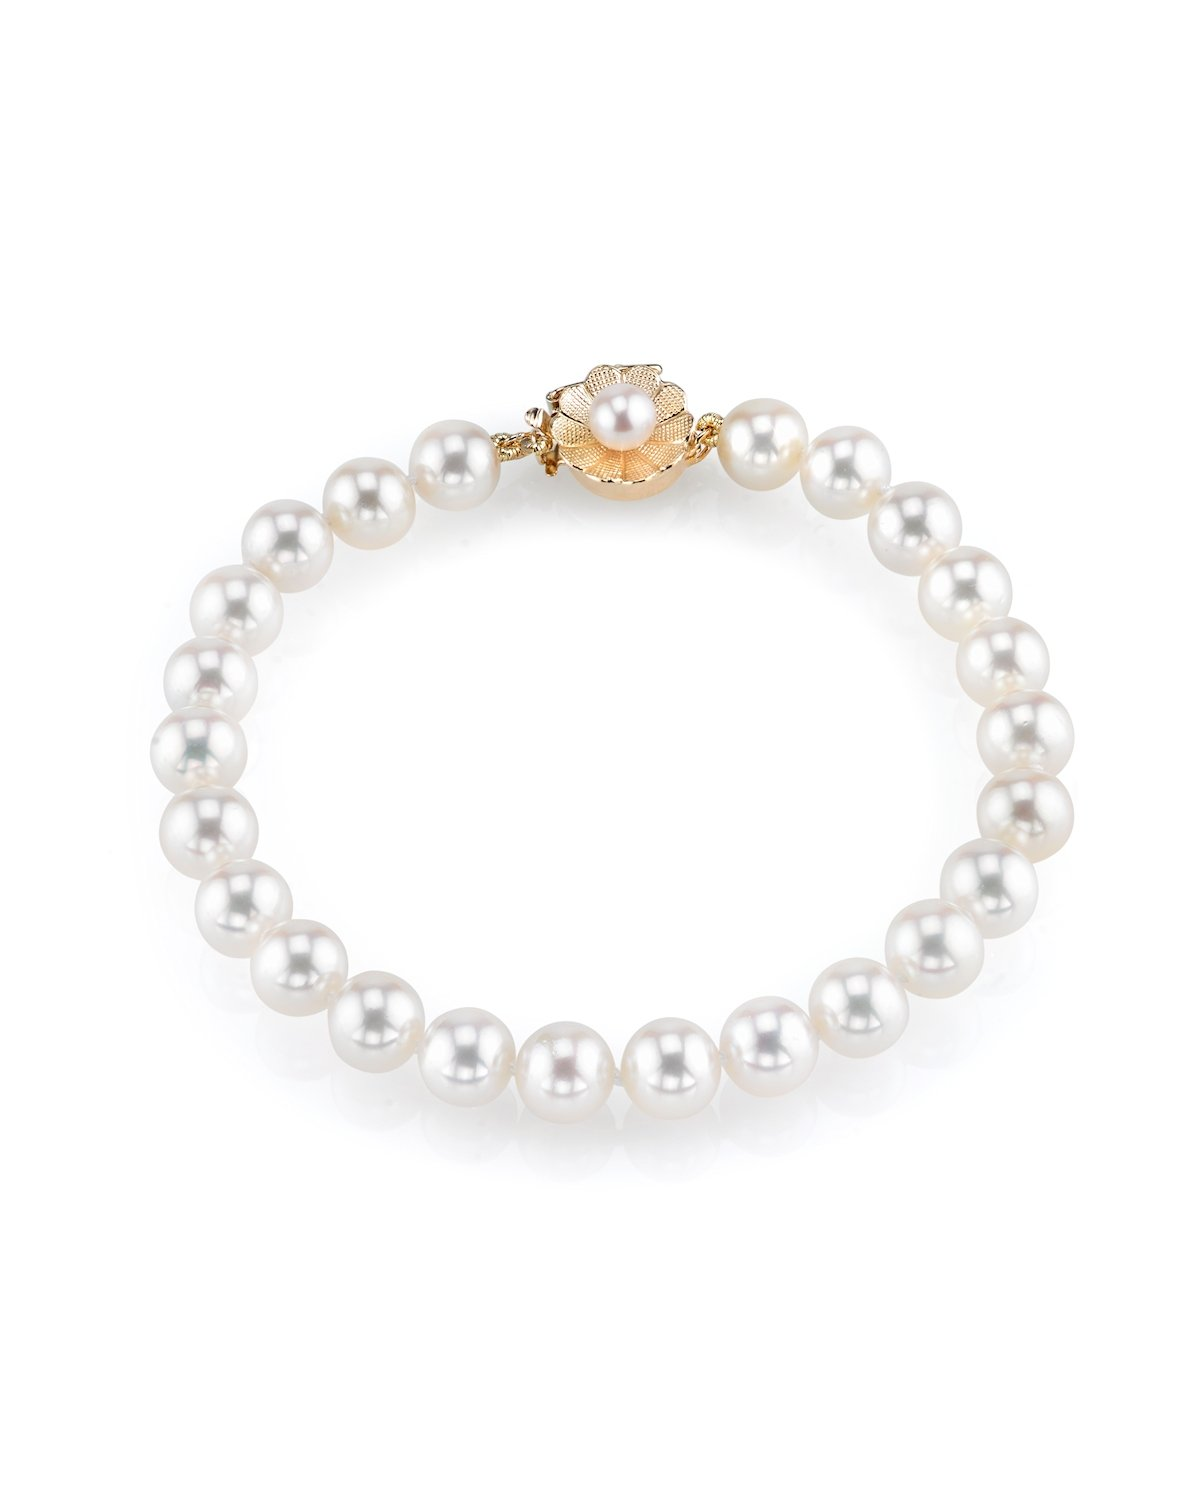 THE PEARL SOURCE AAAA Quality 8-9mm Round White Freshwater Cultured Pearl Bracelet with 14K Yellow Gold Flower Clasp in 7'' Length for Women